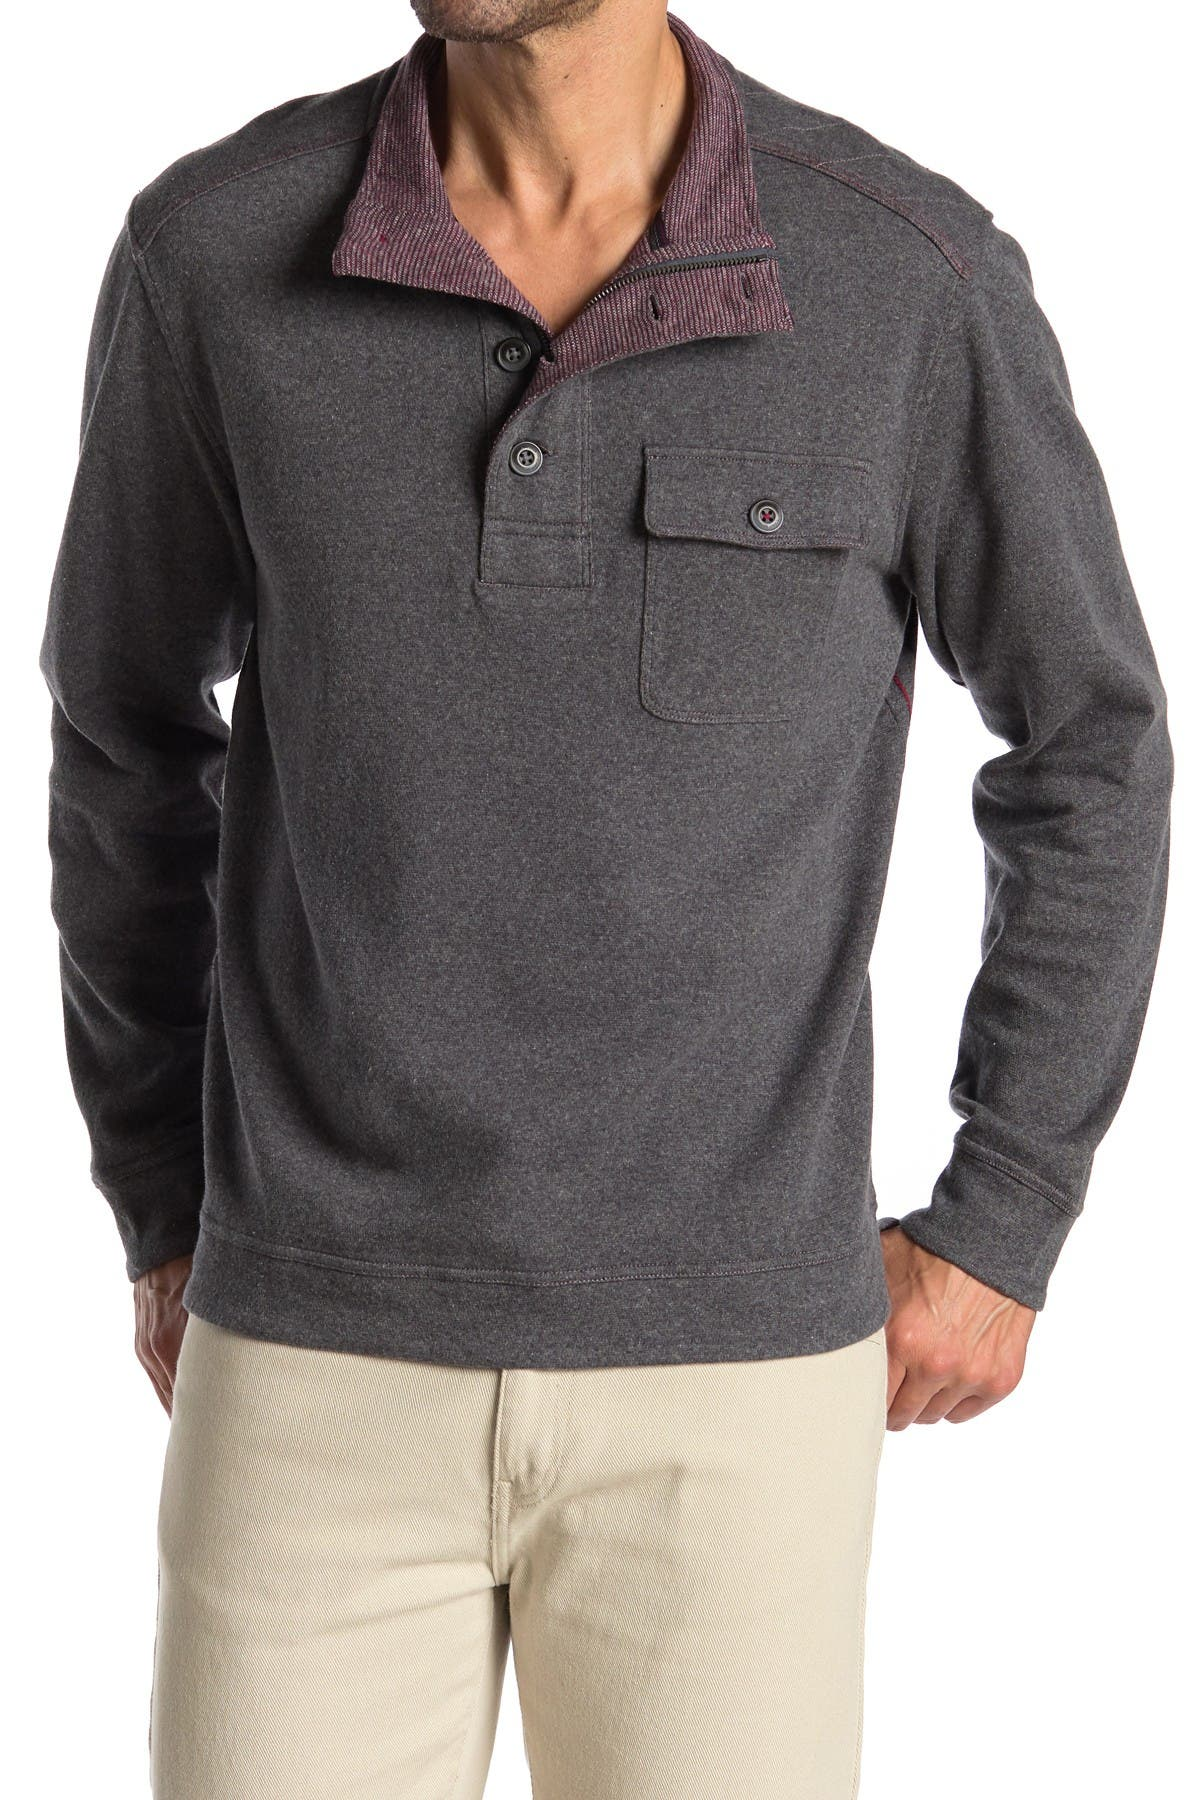 Image of Tommy Bahama Alpine View Quarter Zip & Button Pullover